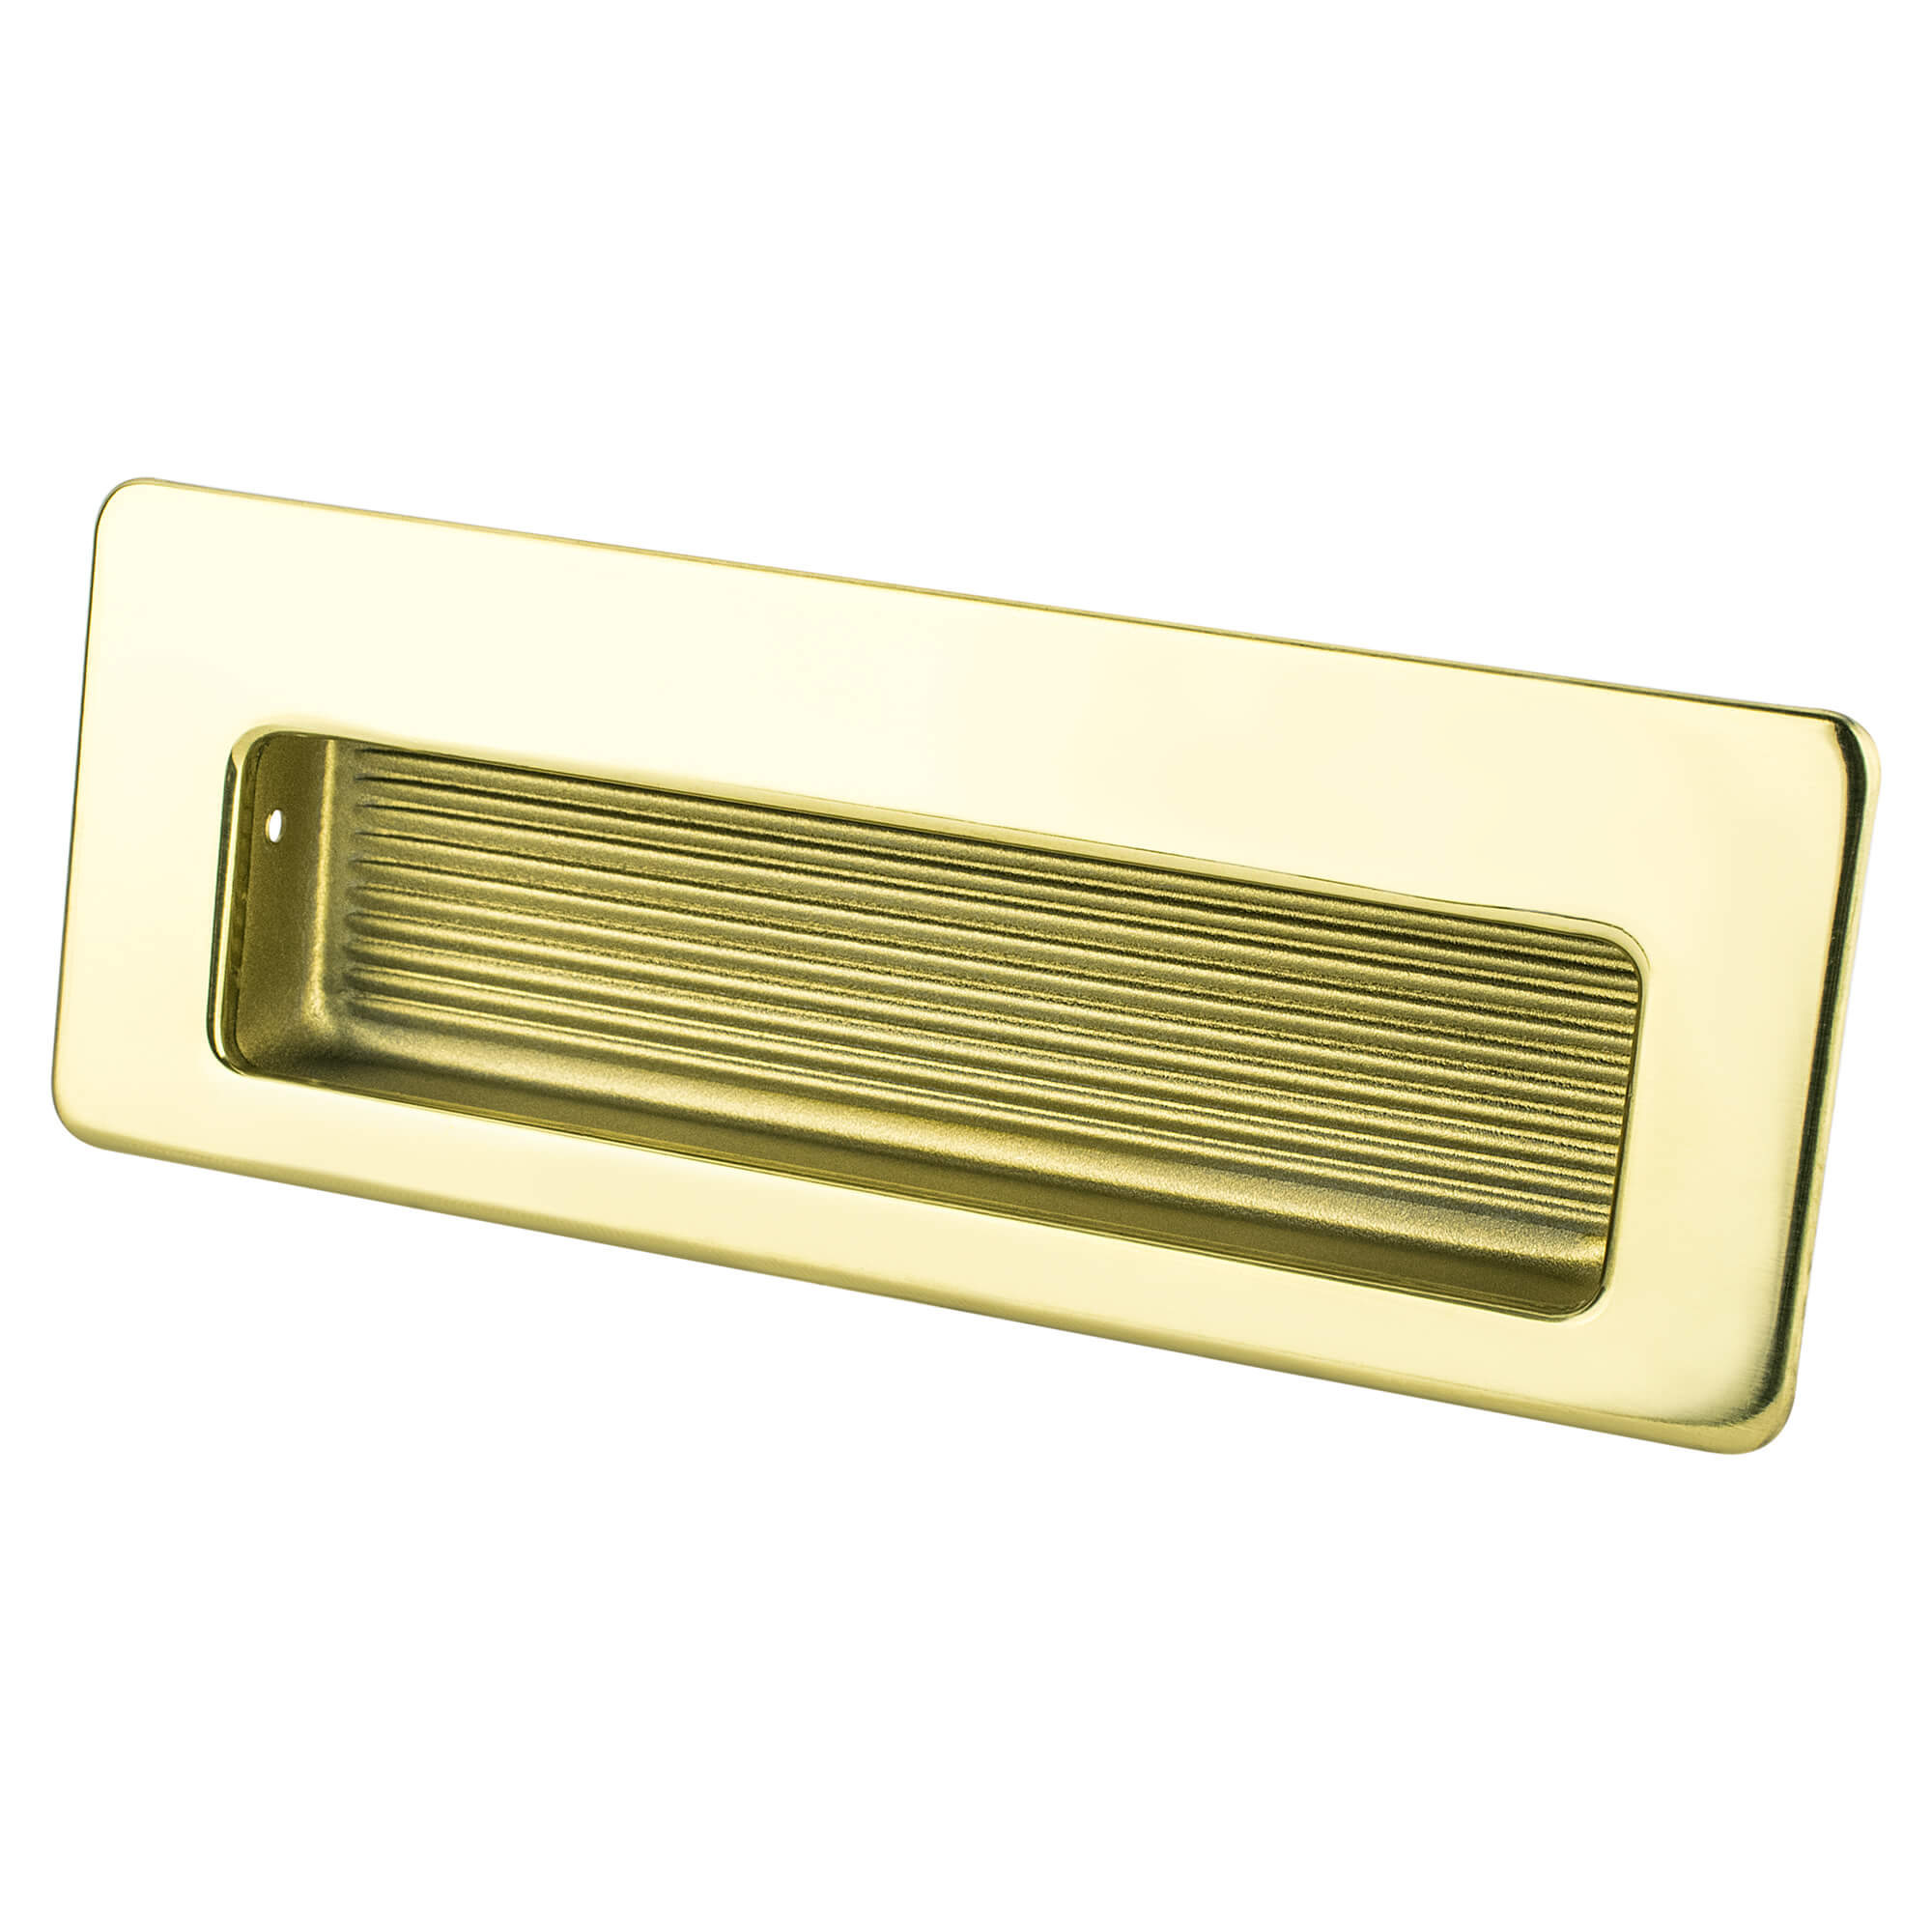 Berenson 6691 107 B Zurich 4 1 2 114mm Recessed Cabinet Pull Polished Gold The Hardware Hut